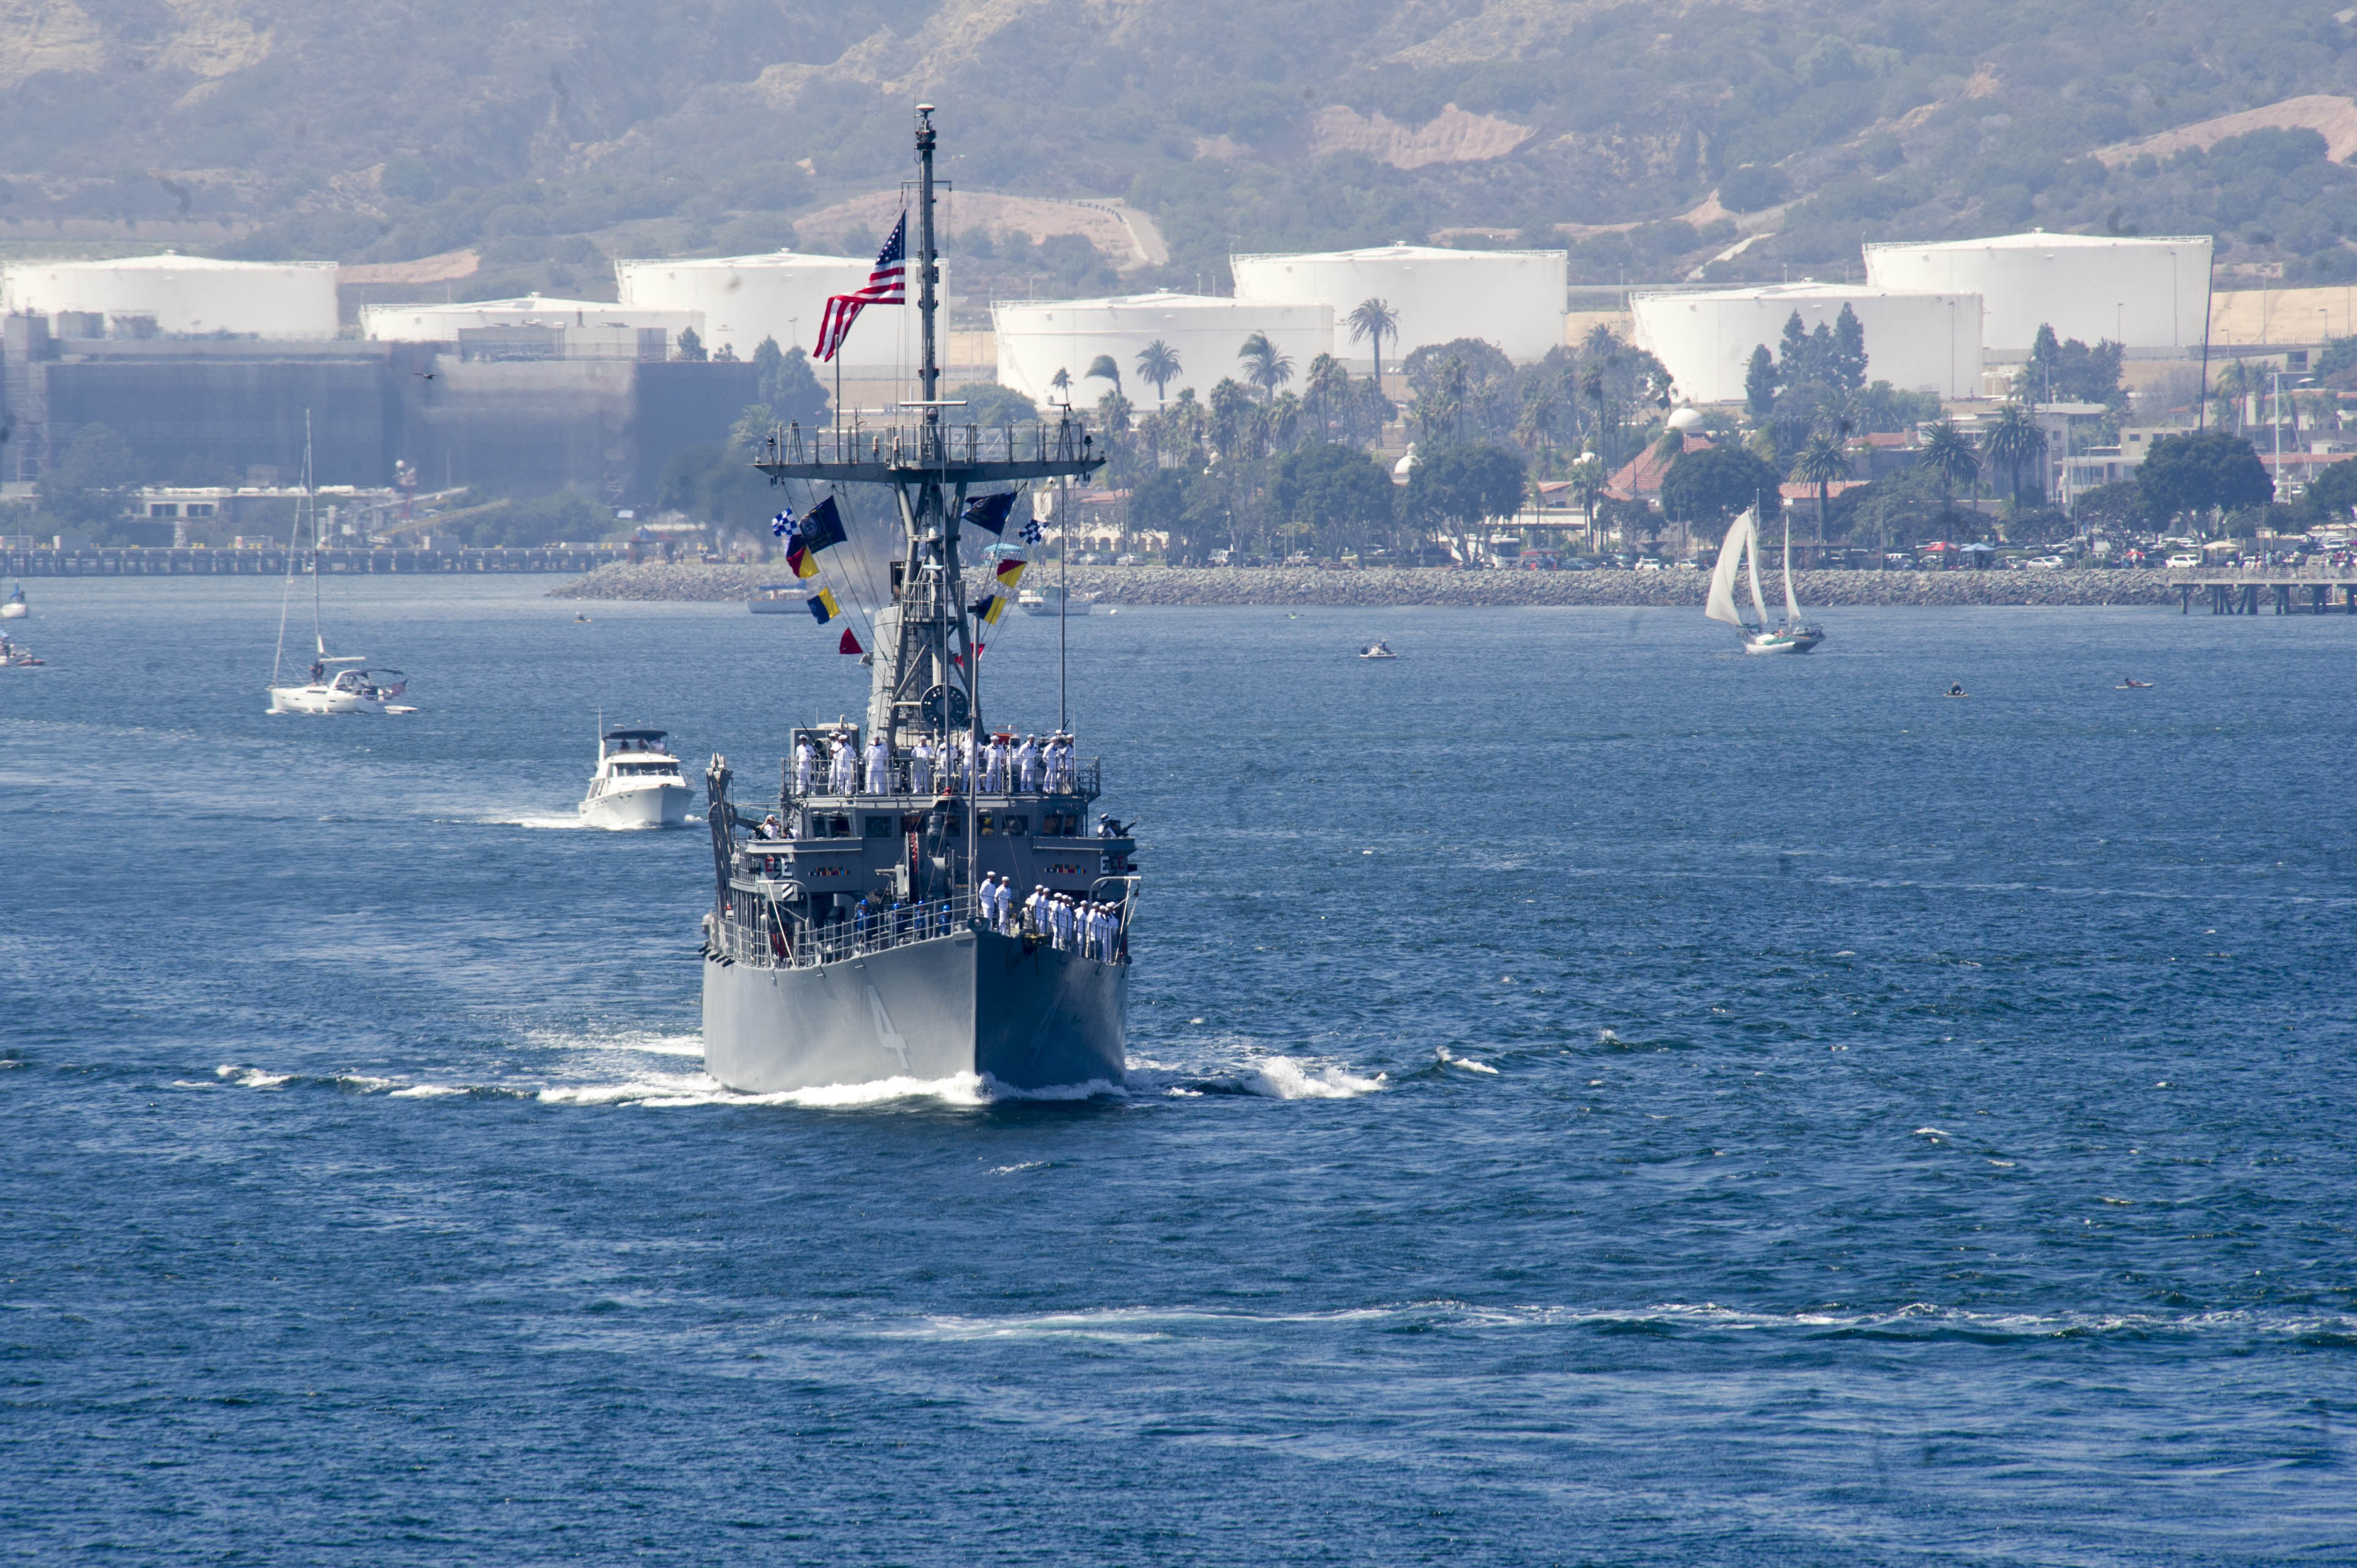 The Avenger-class mine countermeasure ship USS Champion (MCM 4) returned to Naval Base San Diego following the successful completion of a survey operation in the waters off the coast of Southern California, Sept. 11.